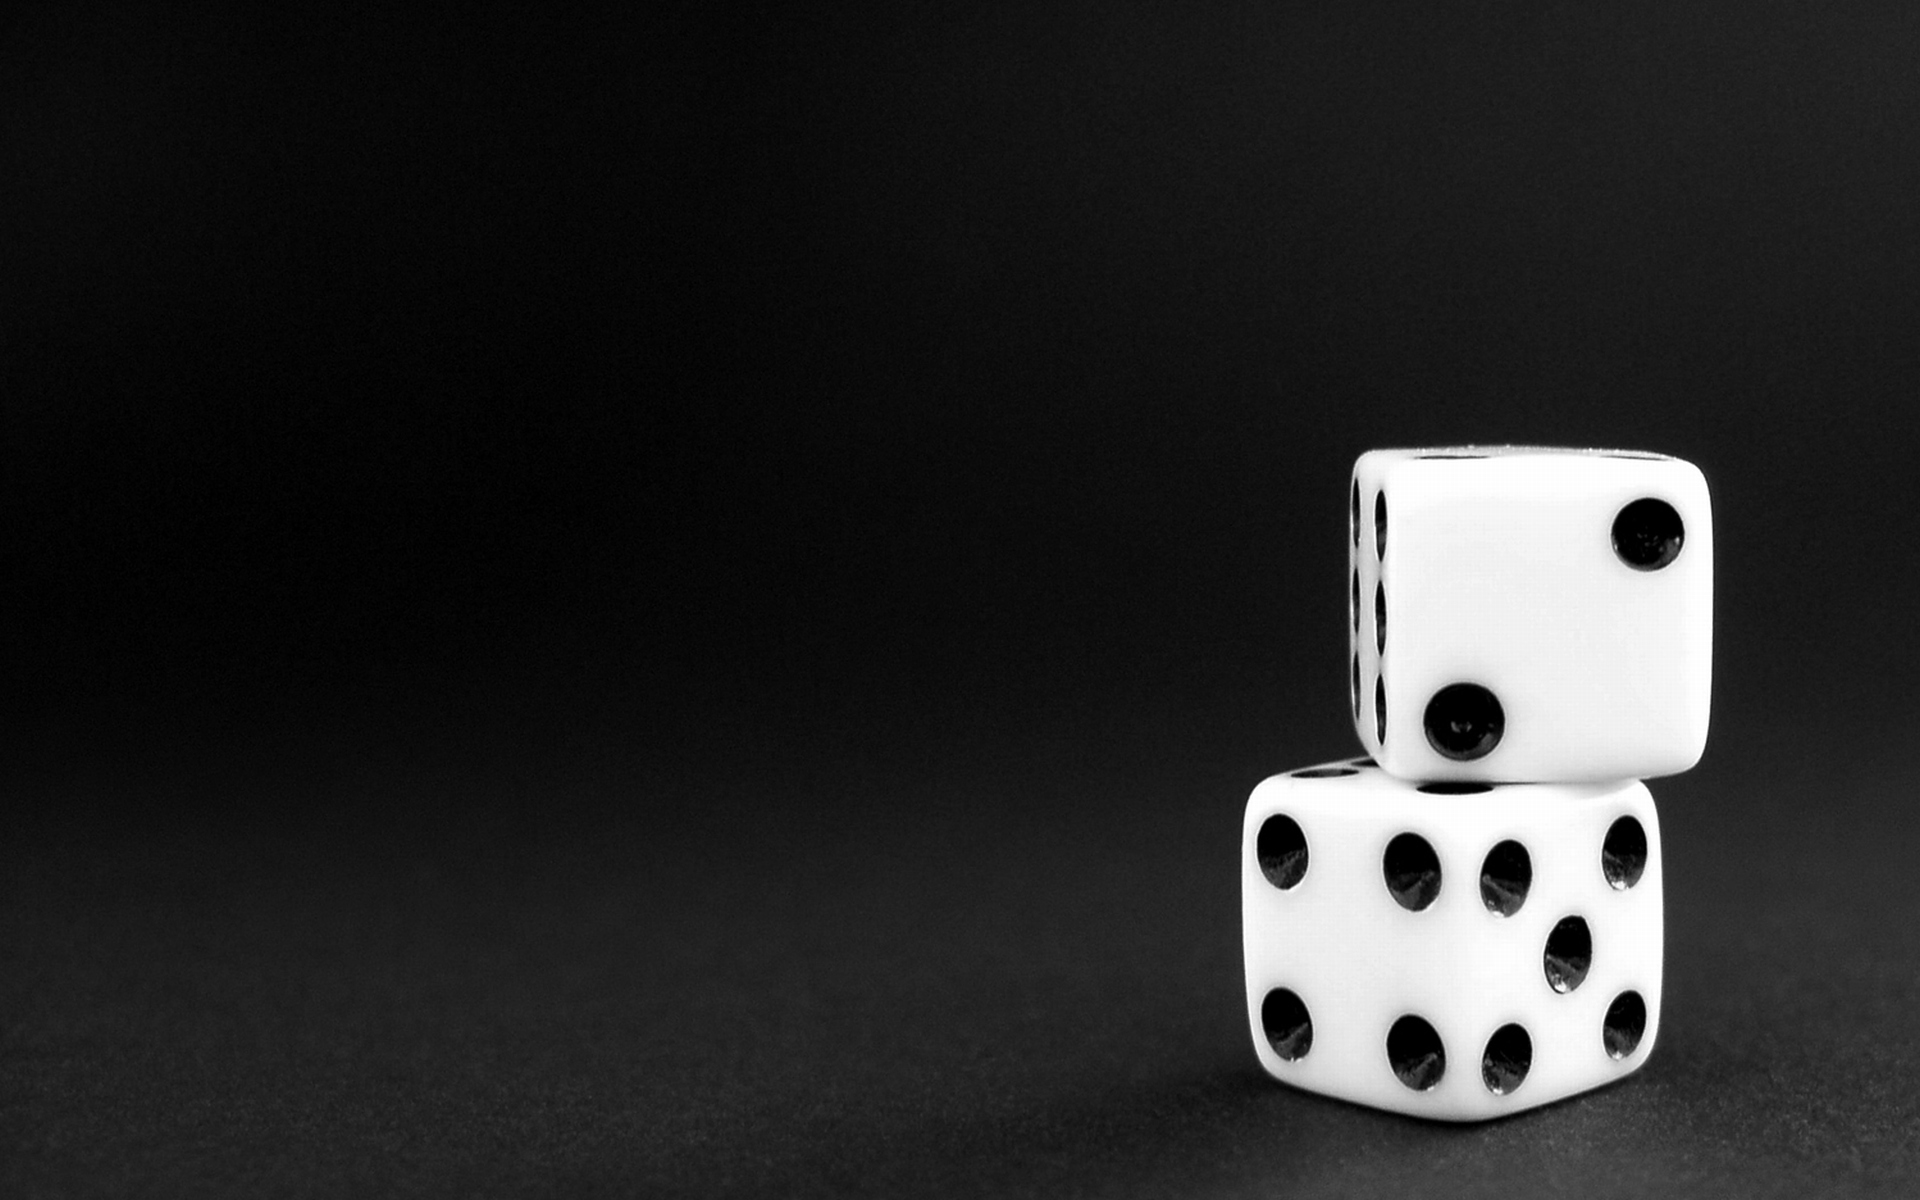 hd wallpaper artistic wallpaper with white dice in white